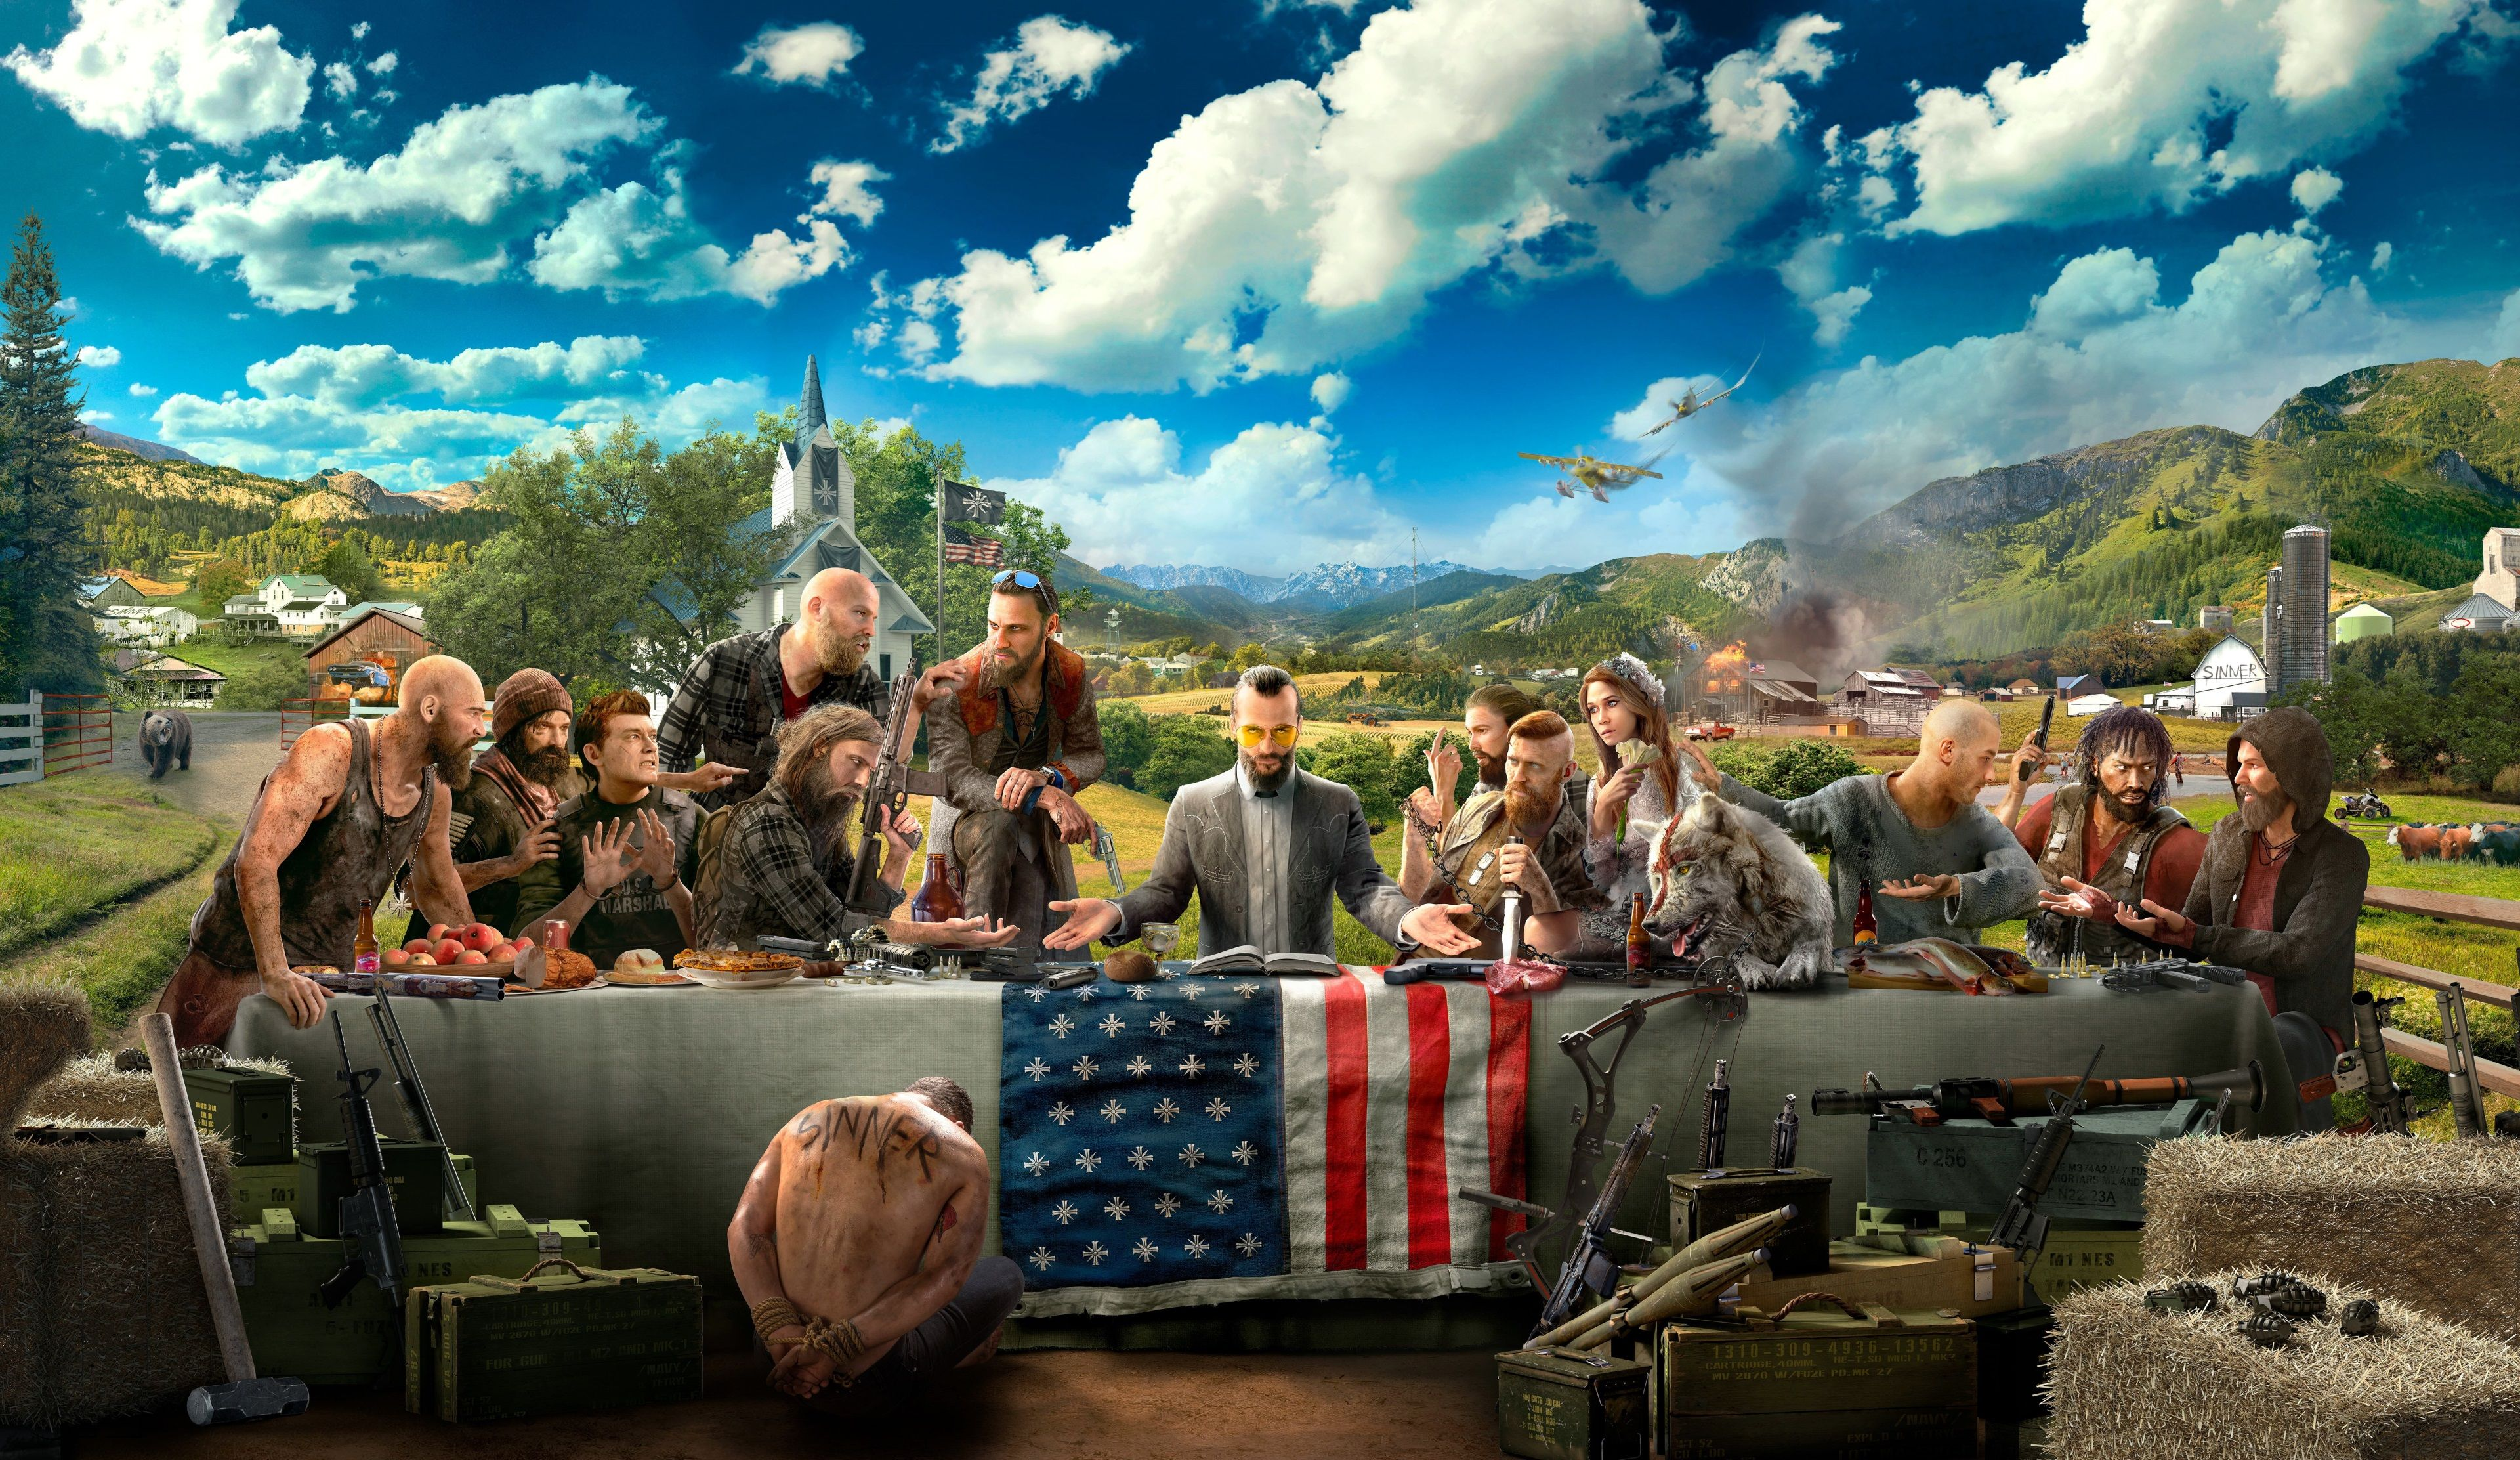 3840x2224 Far Cry 5 4k Wide Wallpaper Download Far Cry 5 Far Cry 5 Game Ubisoft